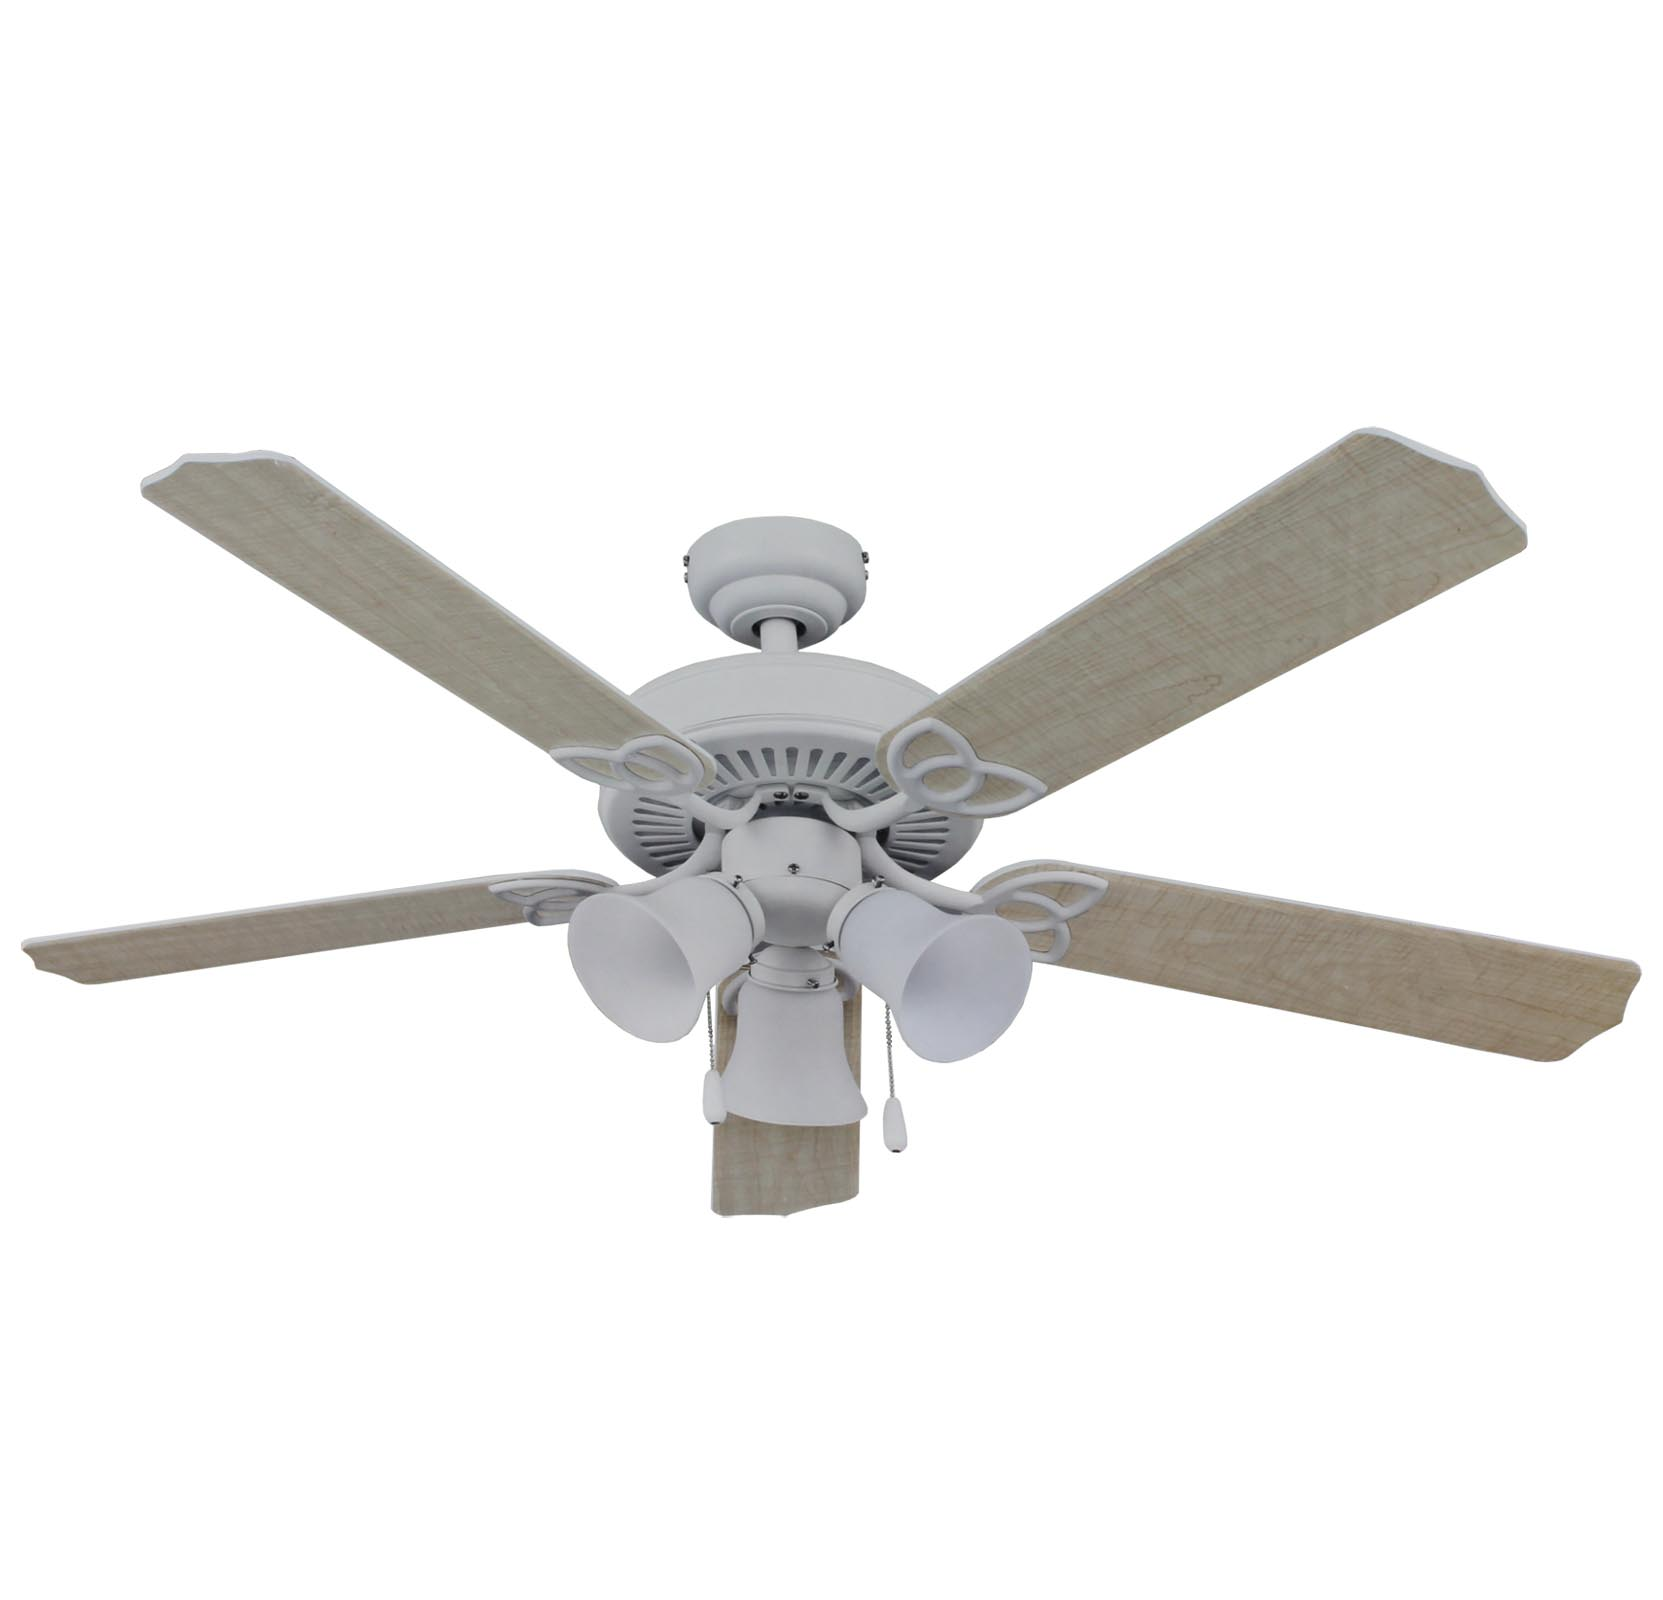 "Living Traditions 52"" Home Ceiling Fan w/ Light 